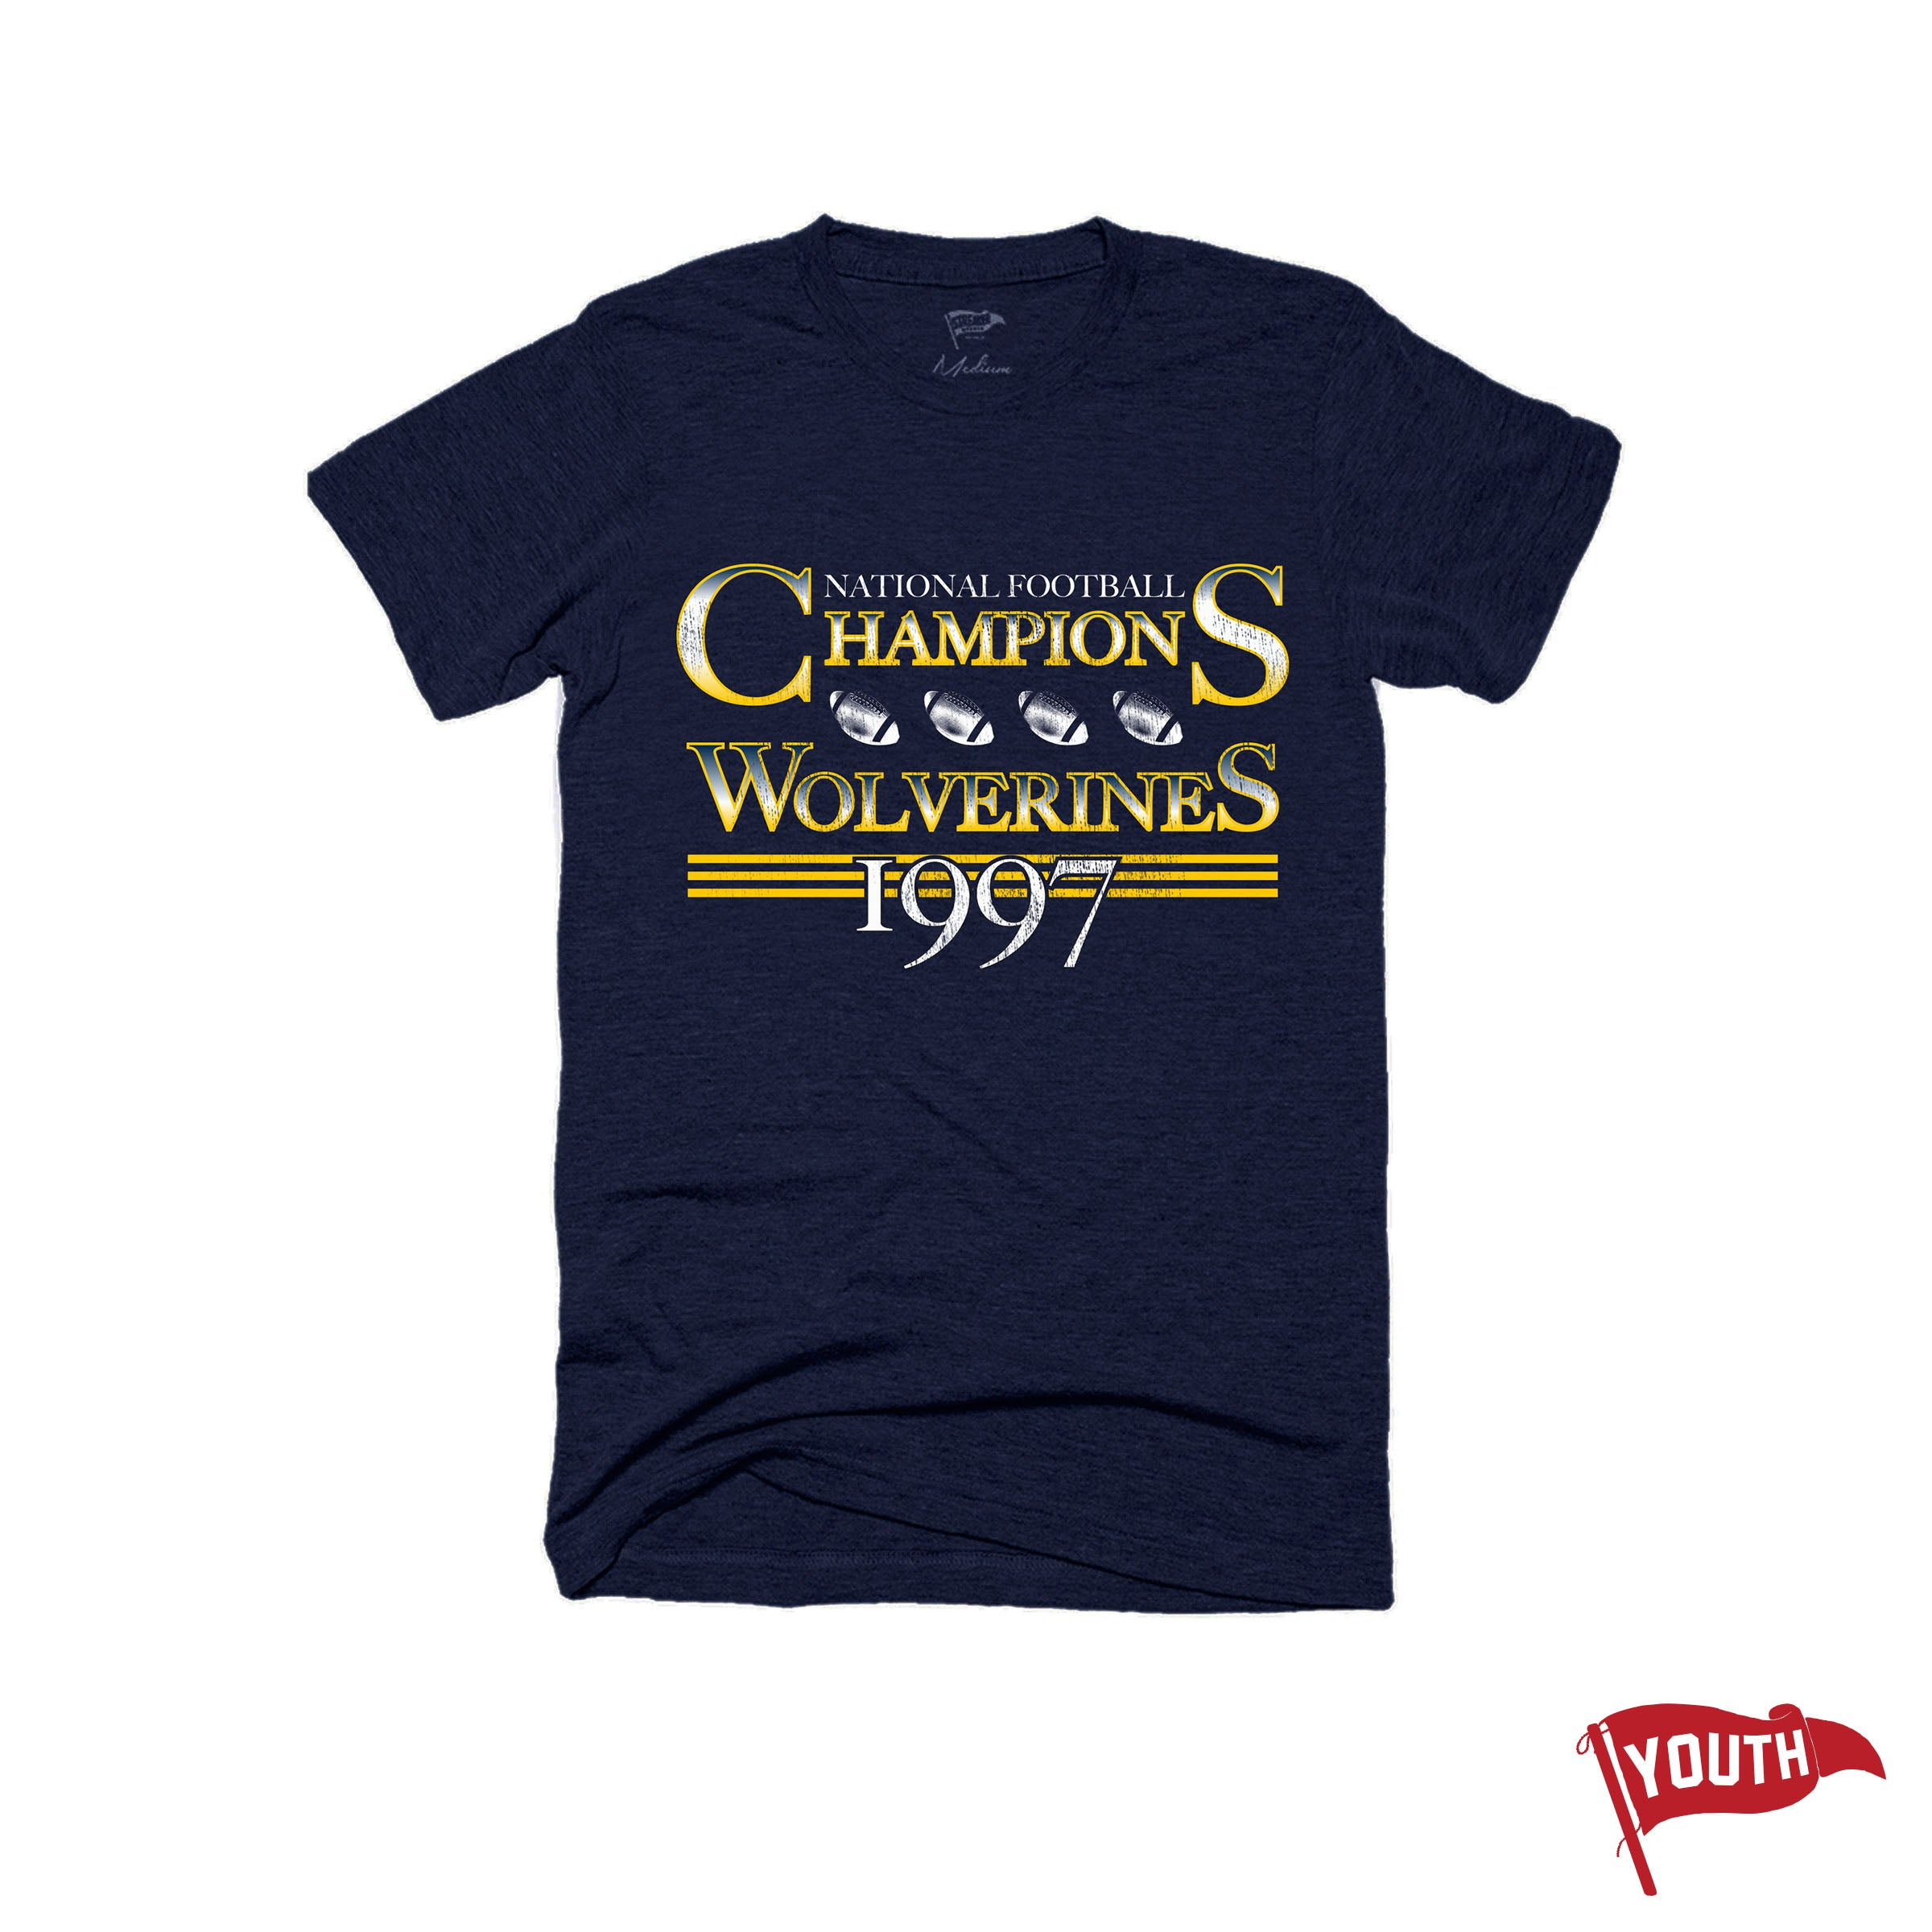 1997 Wolverines National Champs Youth Football Tee